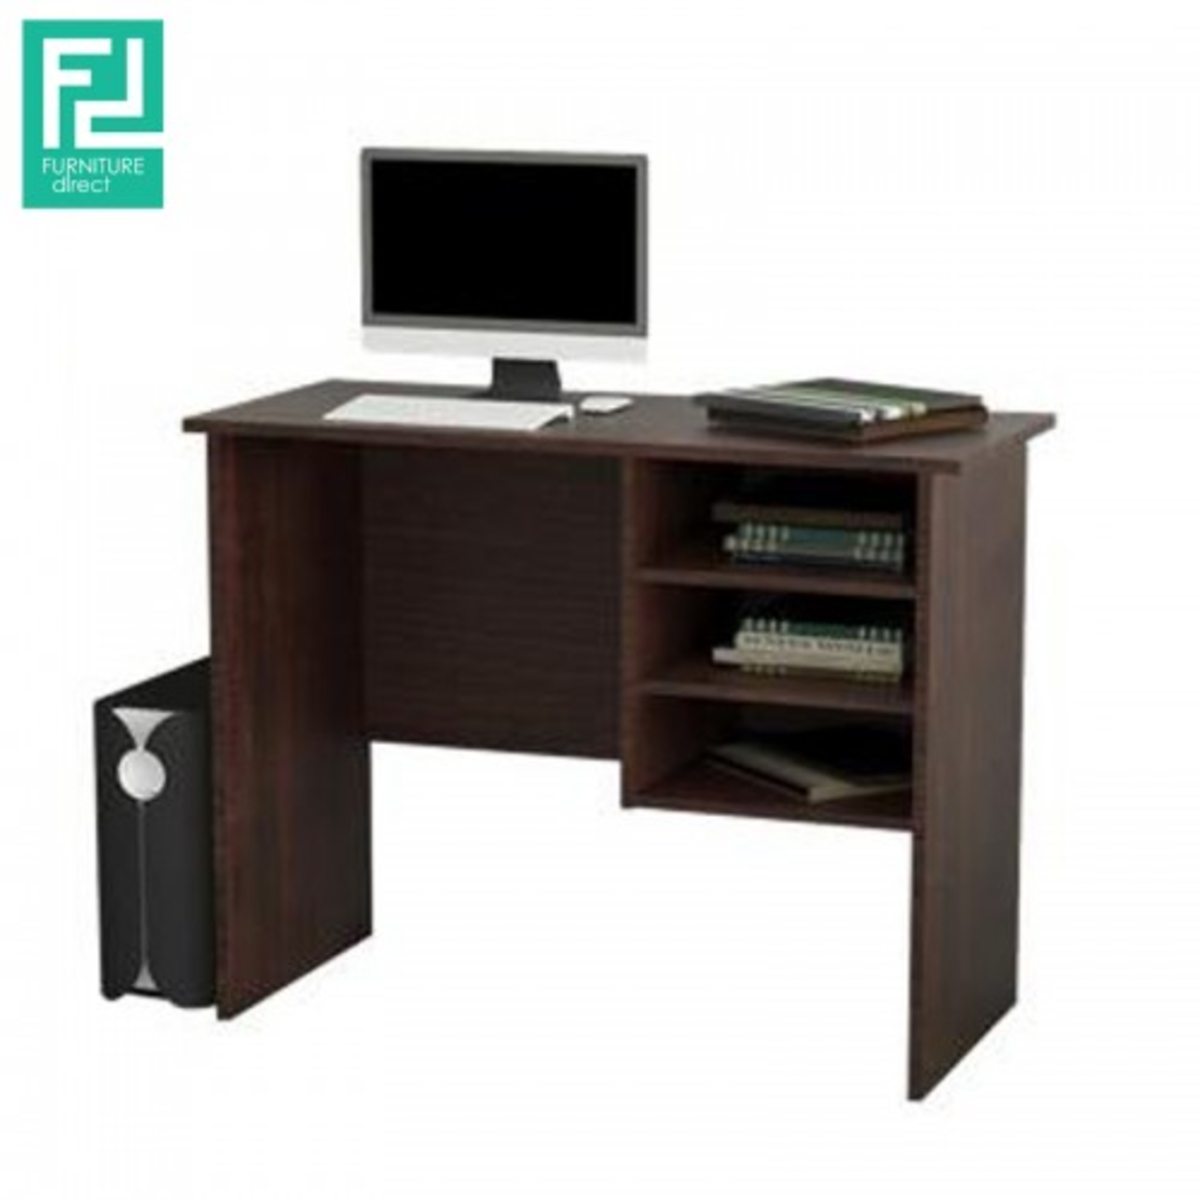 Furniture Direct 3 Feet Study Desk With Drawers